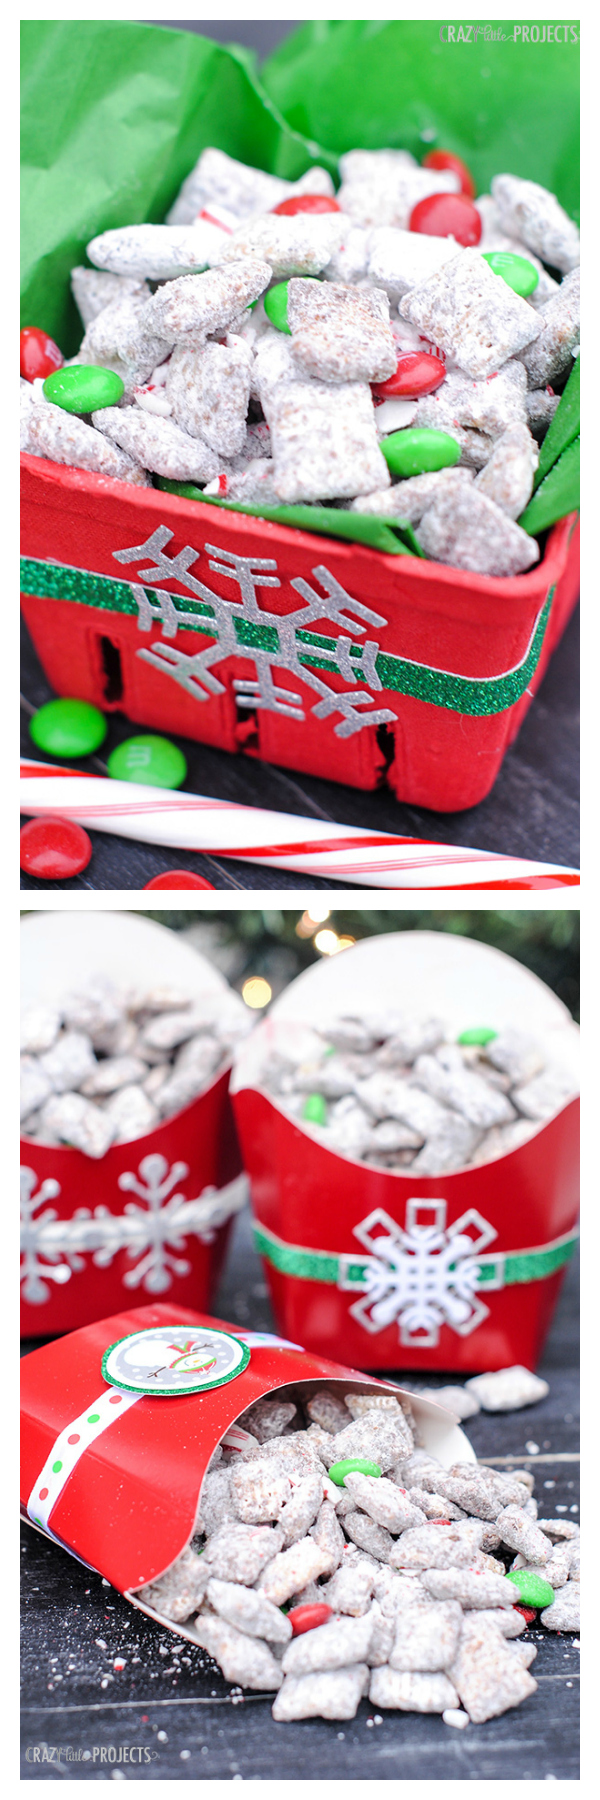 Chocolate Candy Cane Crunch Muddy Buddies and Cute Gift Packaging Ideas